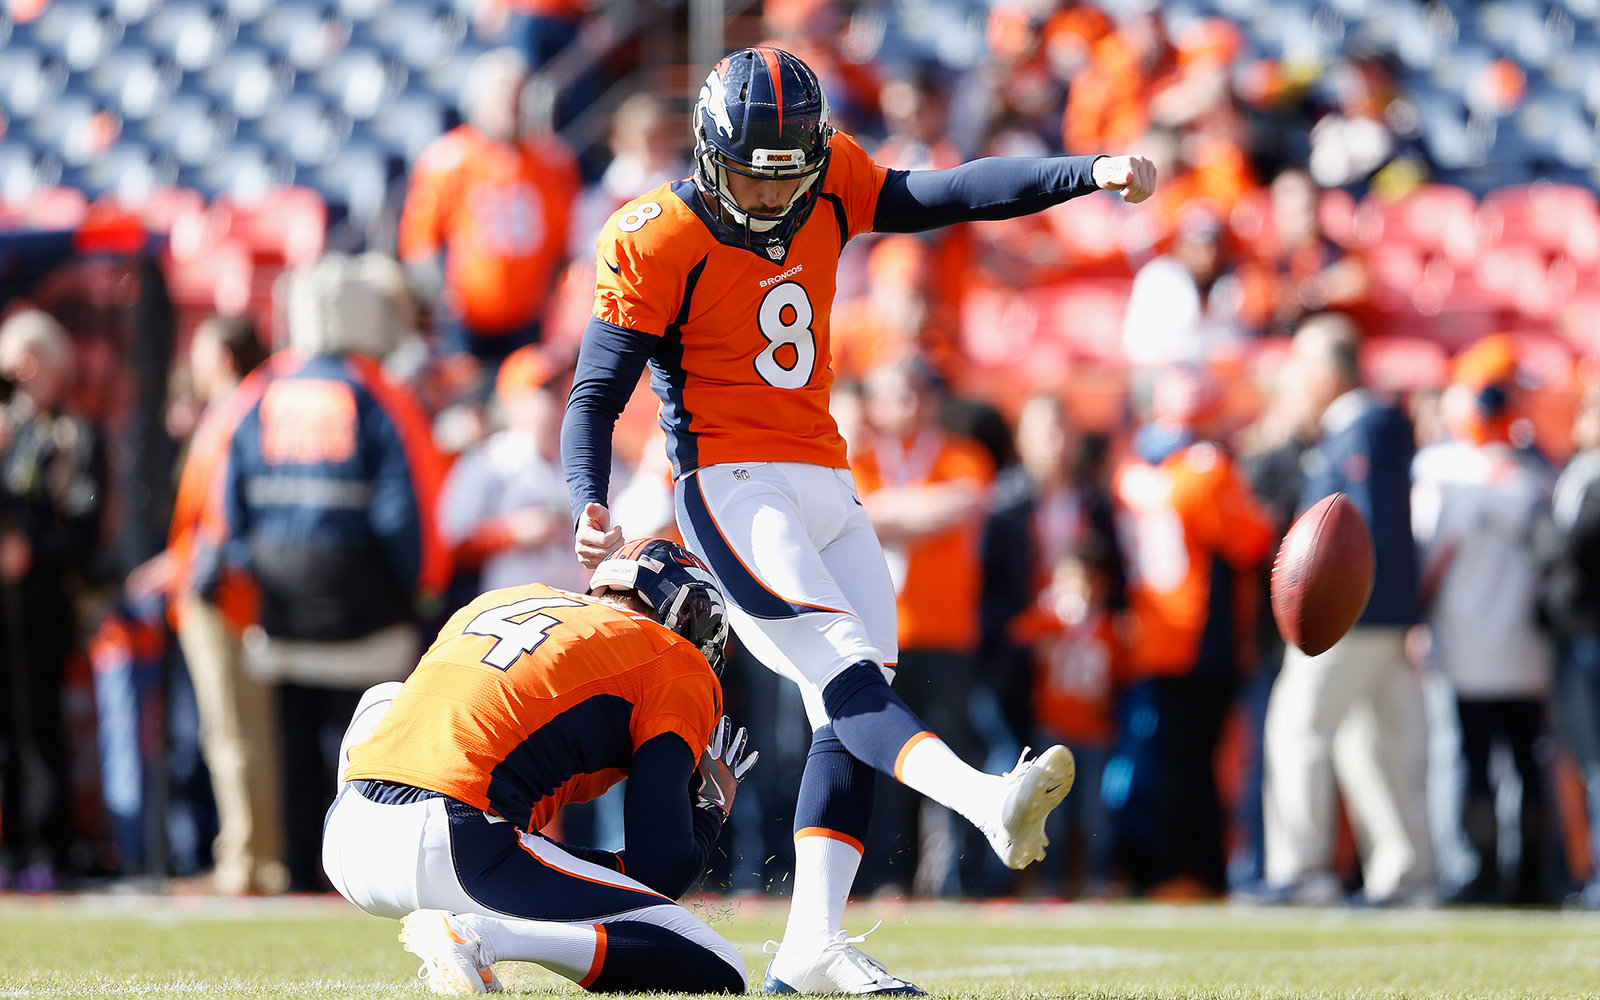 DENVER, CO - JANUARY 24:  Kicker Brandon McManus #8 of the Denver Broncos warms up before the AFC Championship game against the New England Patriots at Sports Authority Field at Mile High on January 24, 2016 in Denver, Colorado. The Broncos defeated the P